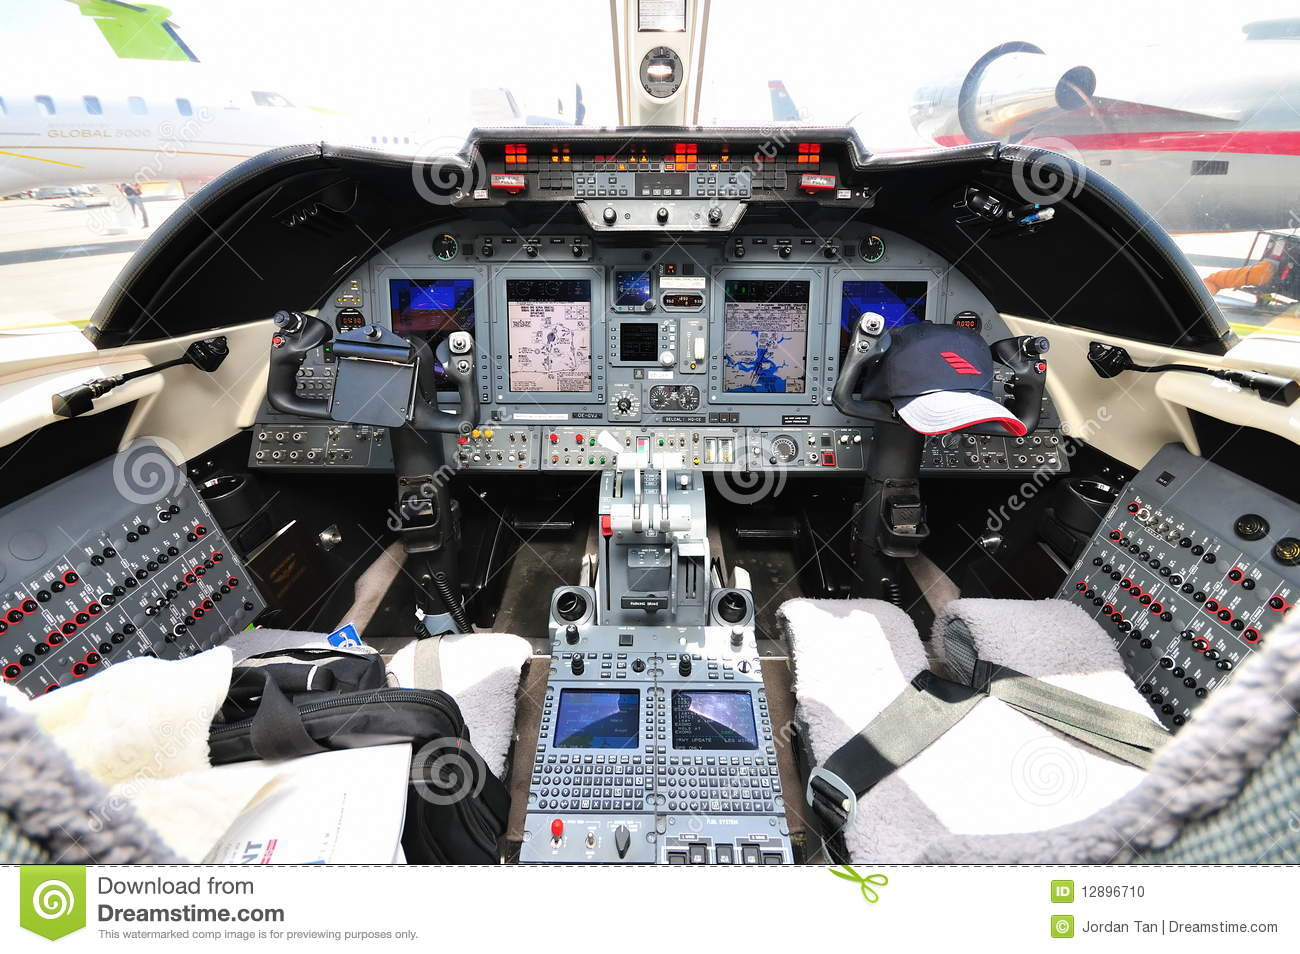 aircraft instruments system reviewer